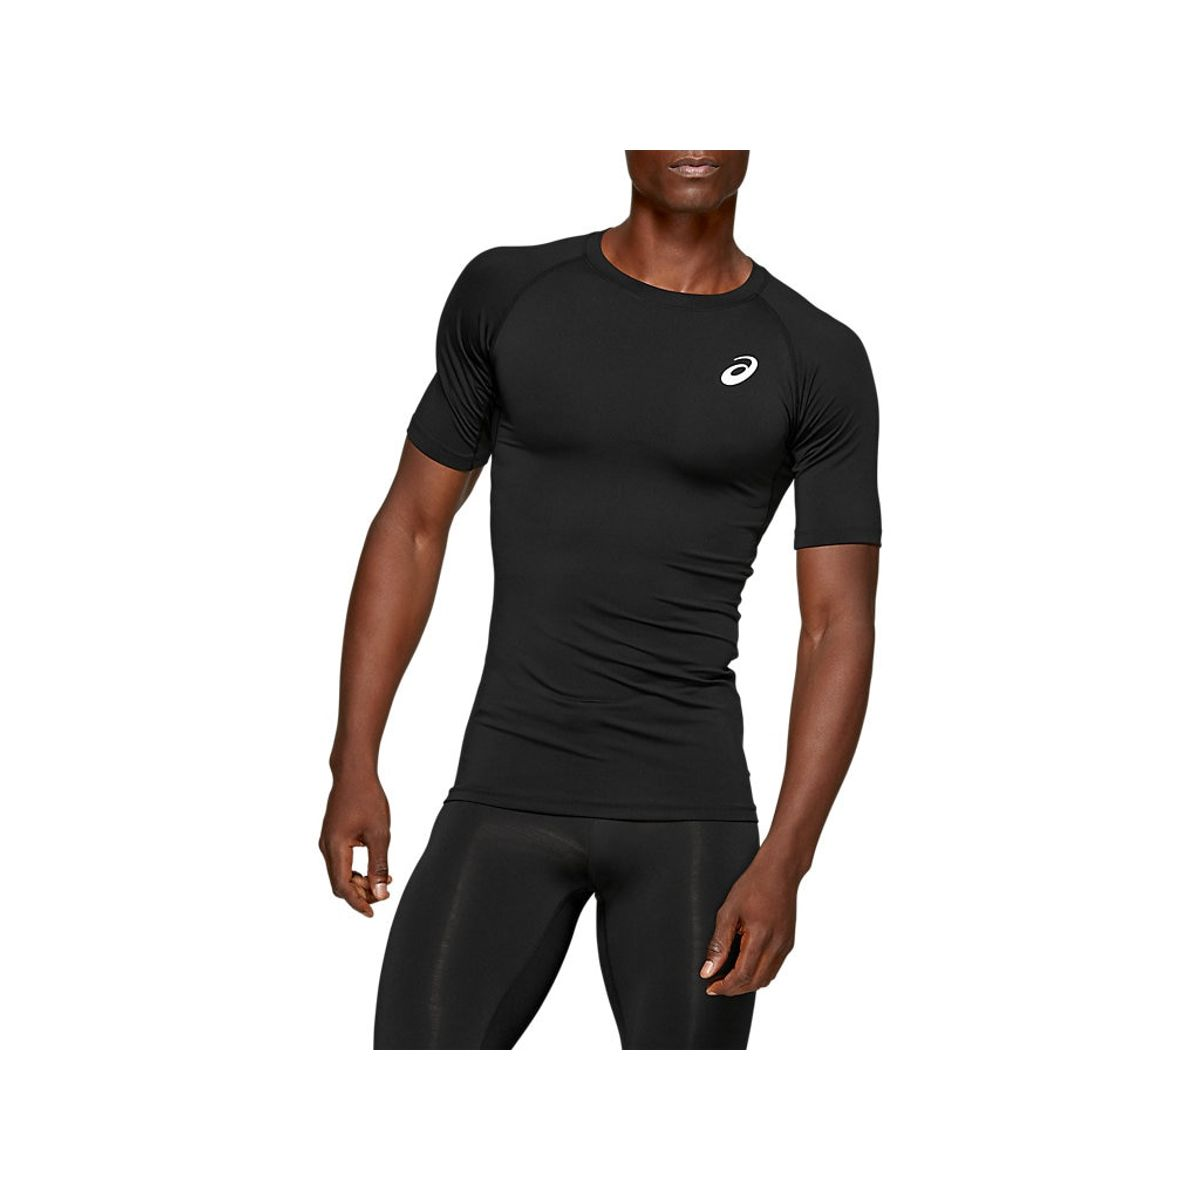 Camiseta-Asics-Movelayer---Masculino---Preto